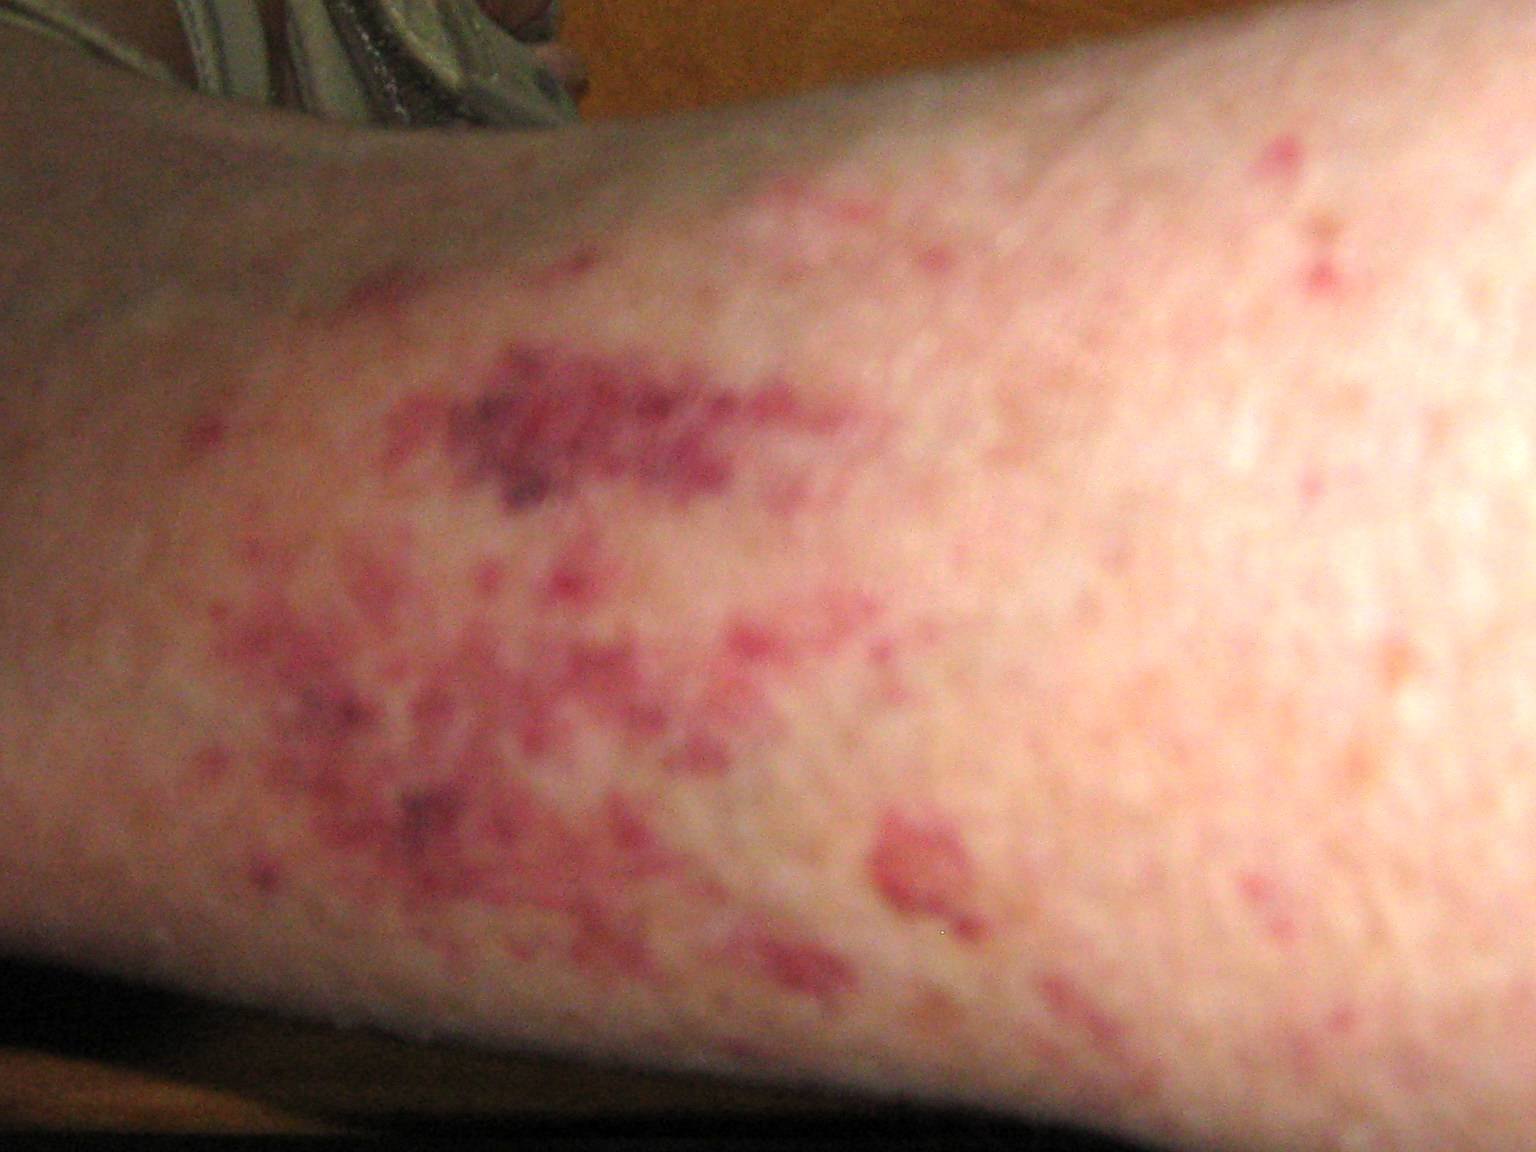 Rheumatoid Arthritis Rashes: Pictures, Symptoms, and ...